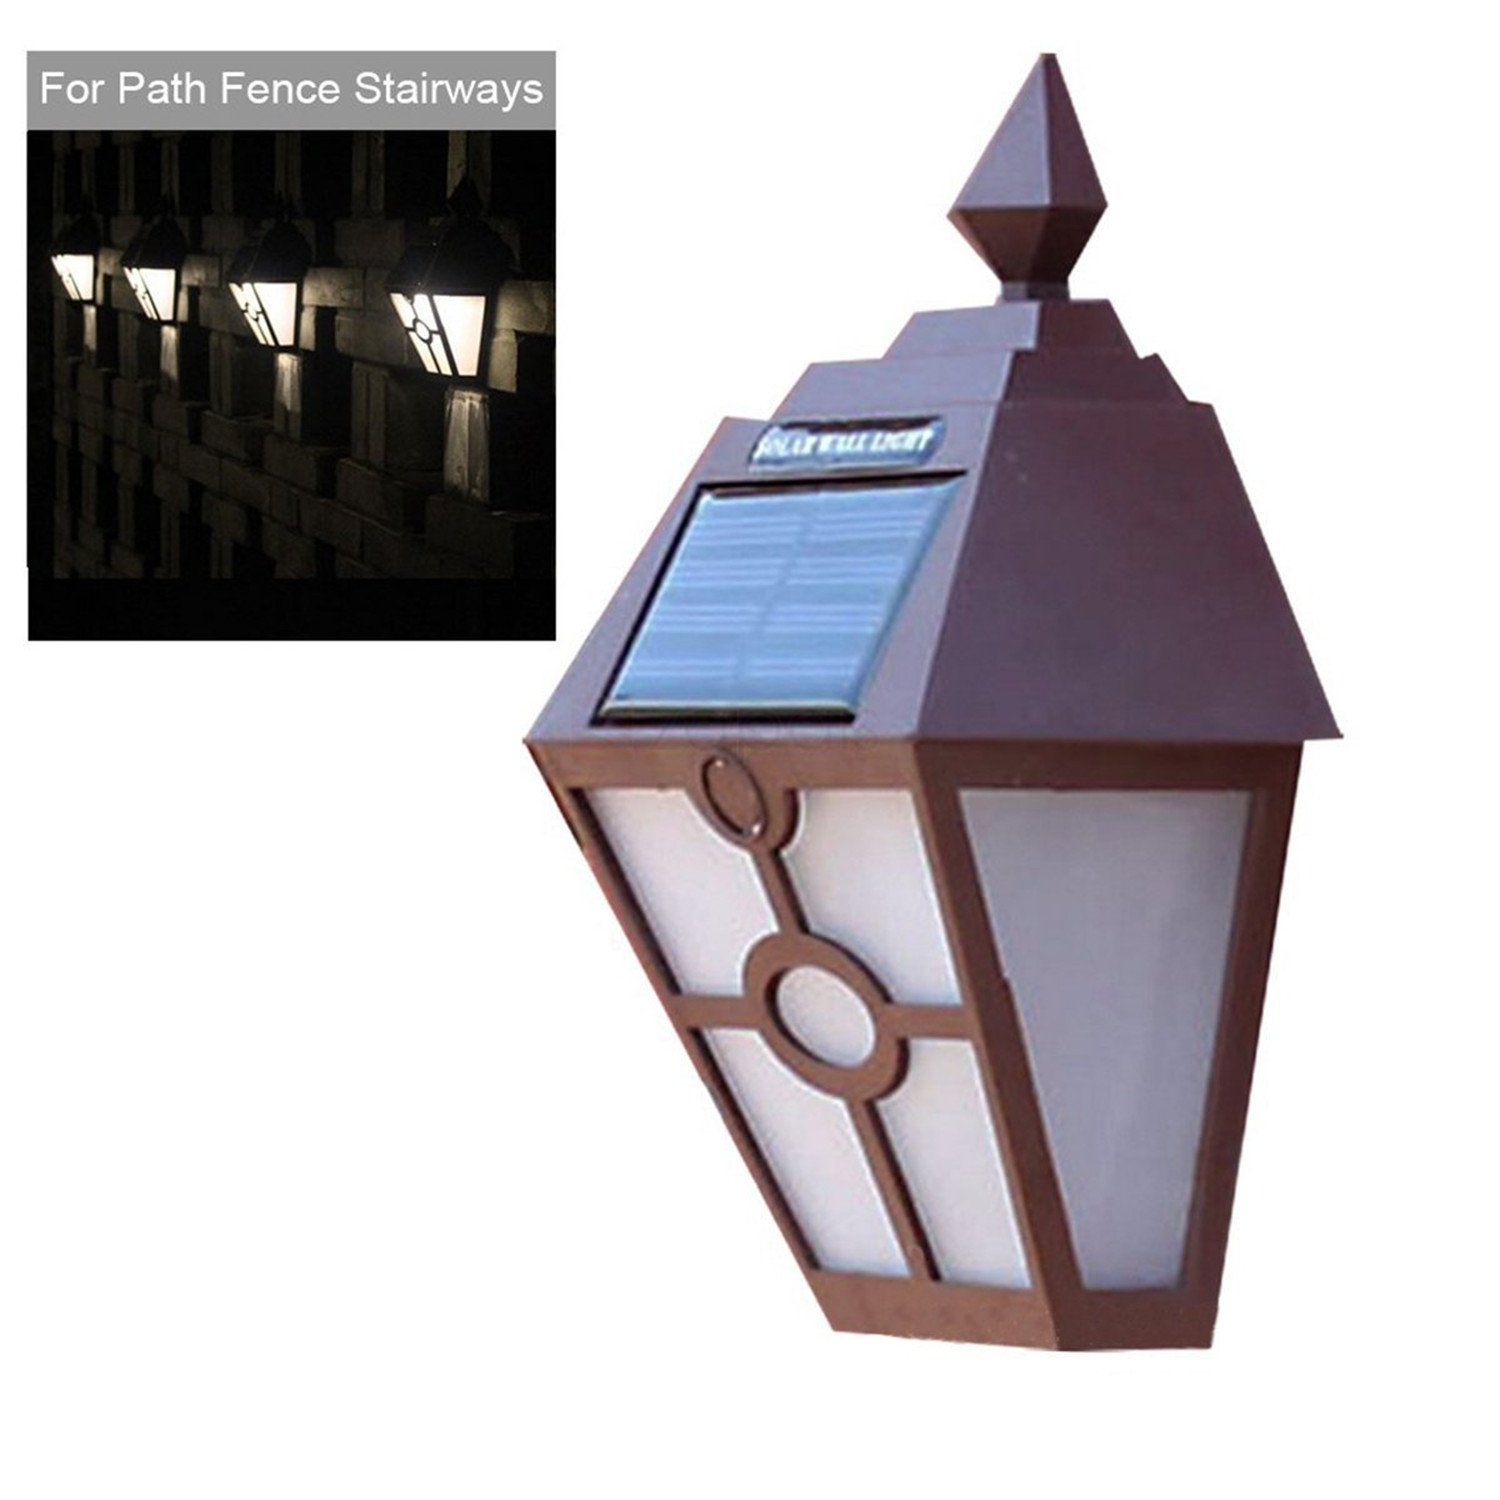 Yaojiaju Retro LED Solar Panel Hexagon Wall Lights Outdoor Garden Fence Stair Lamp Waterproof New Year Christmas Garland (Color : Brown)